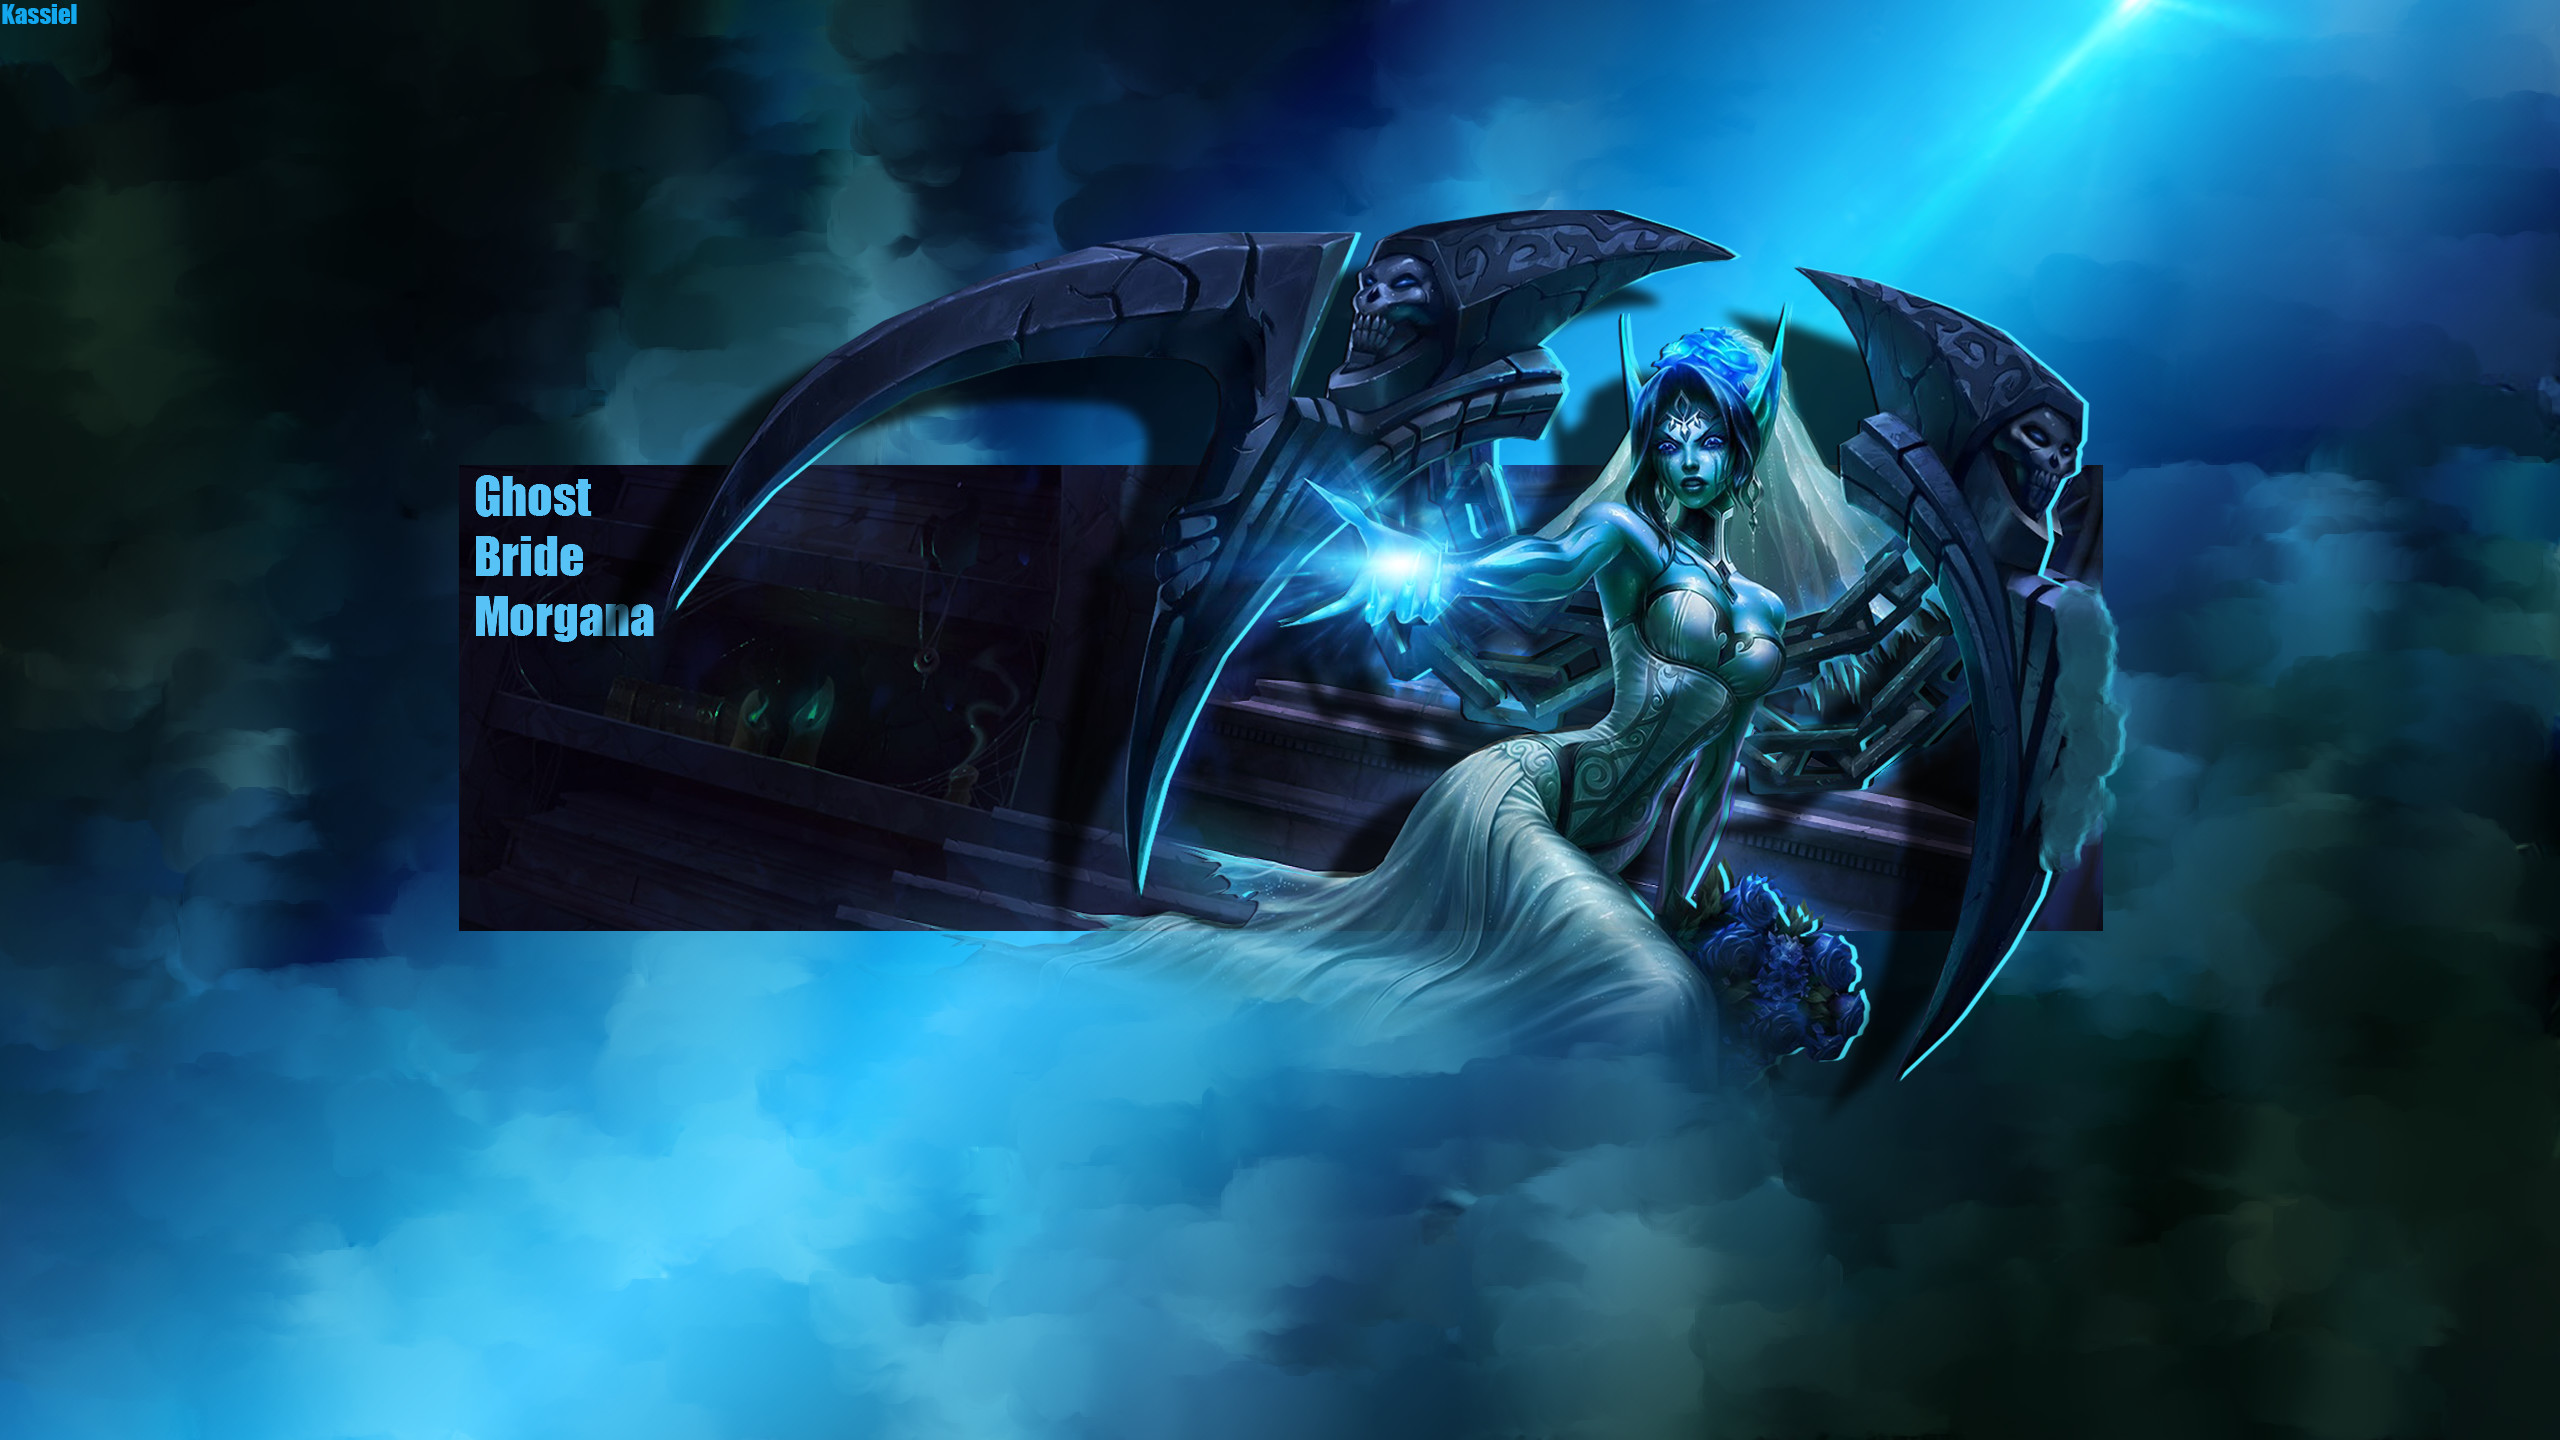 2560x1440 Ghost Bride Morgana Wallpaper - Morgana Noiva Fantasma Wallpaper. Slayer  Jinx ...